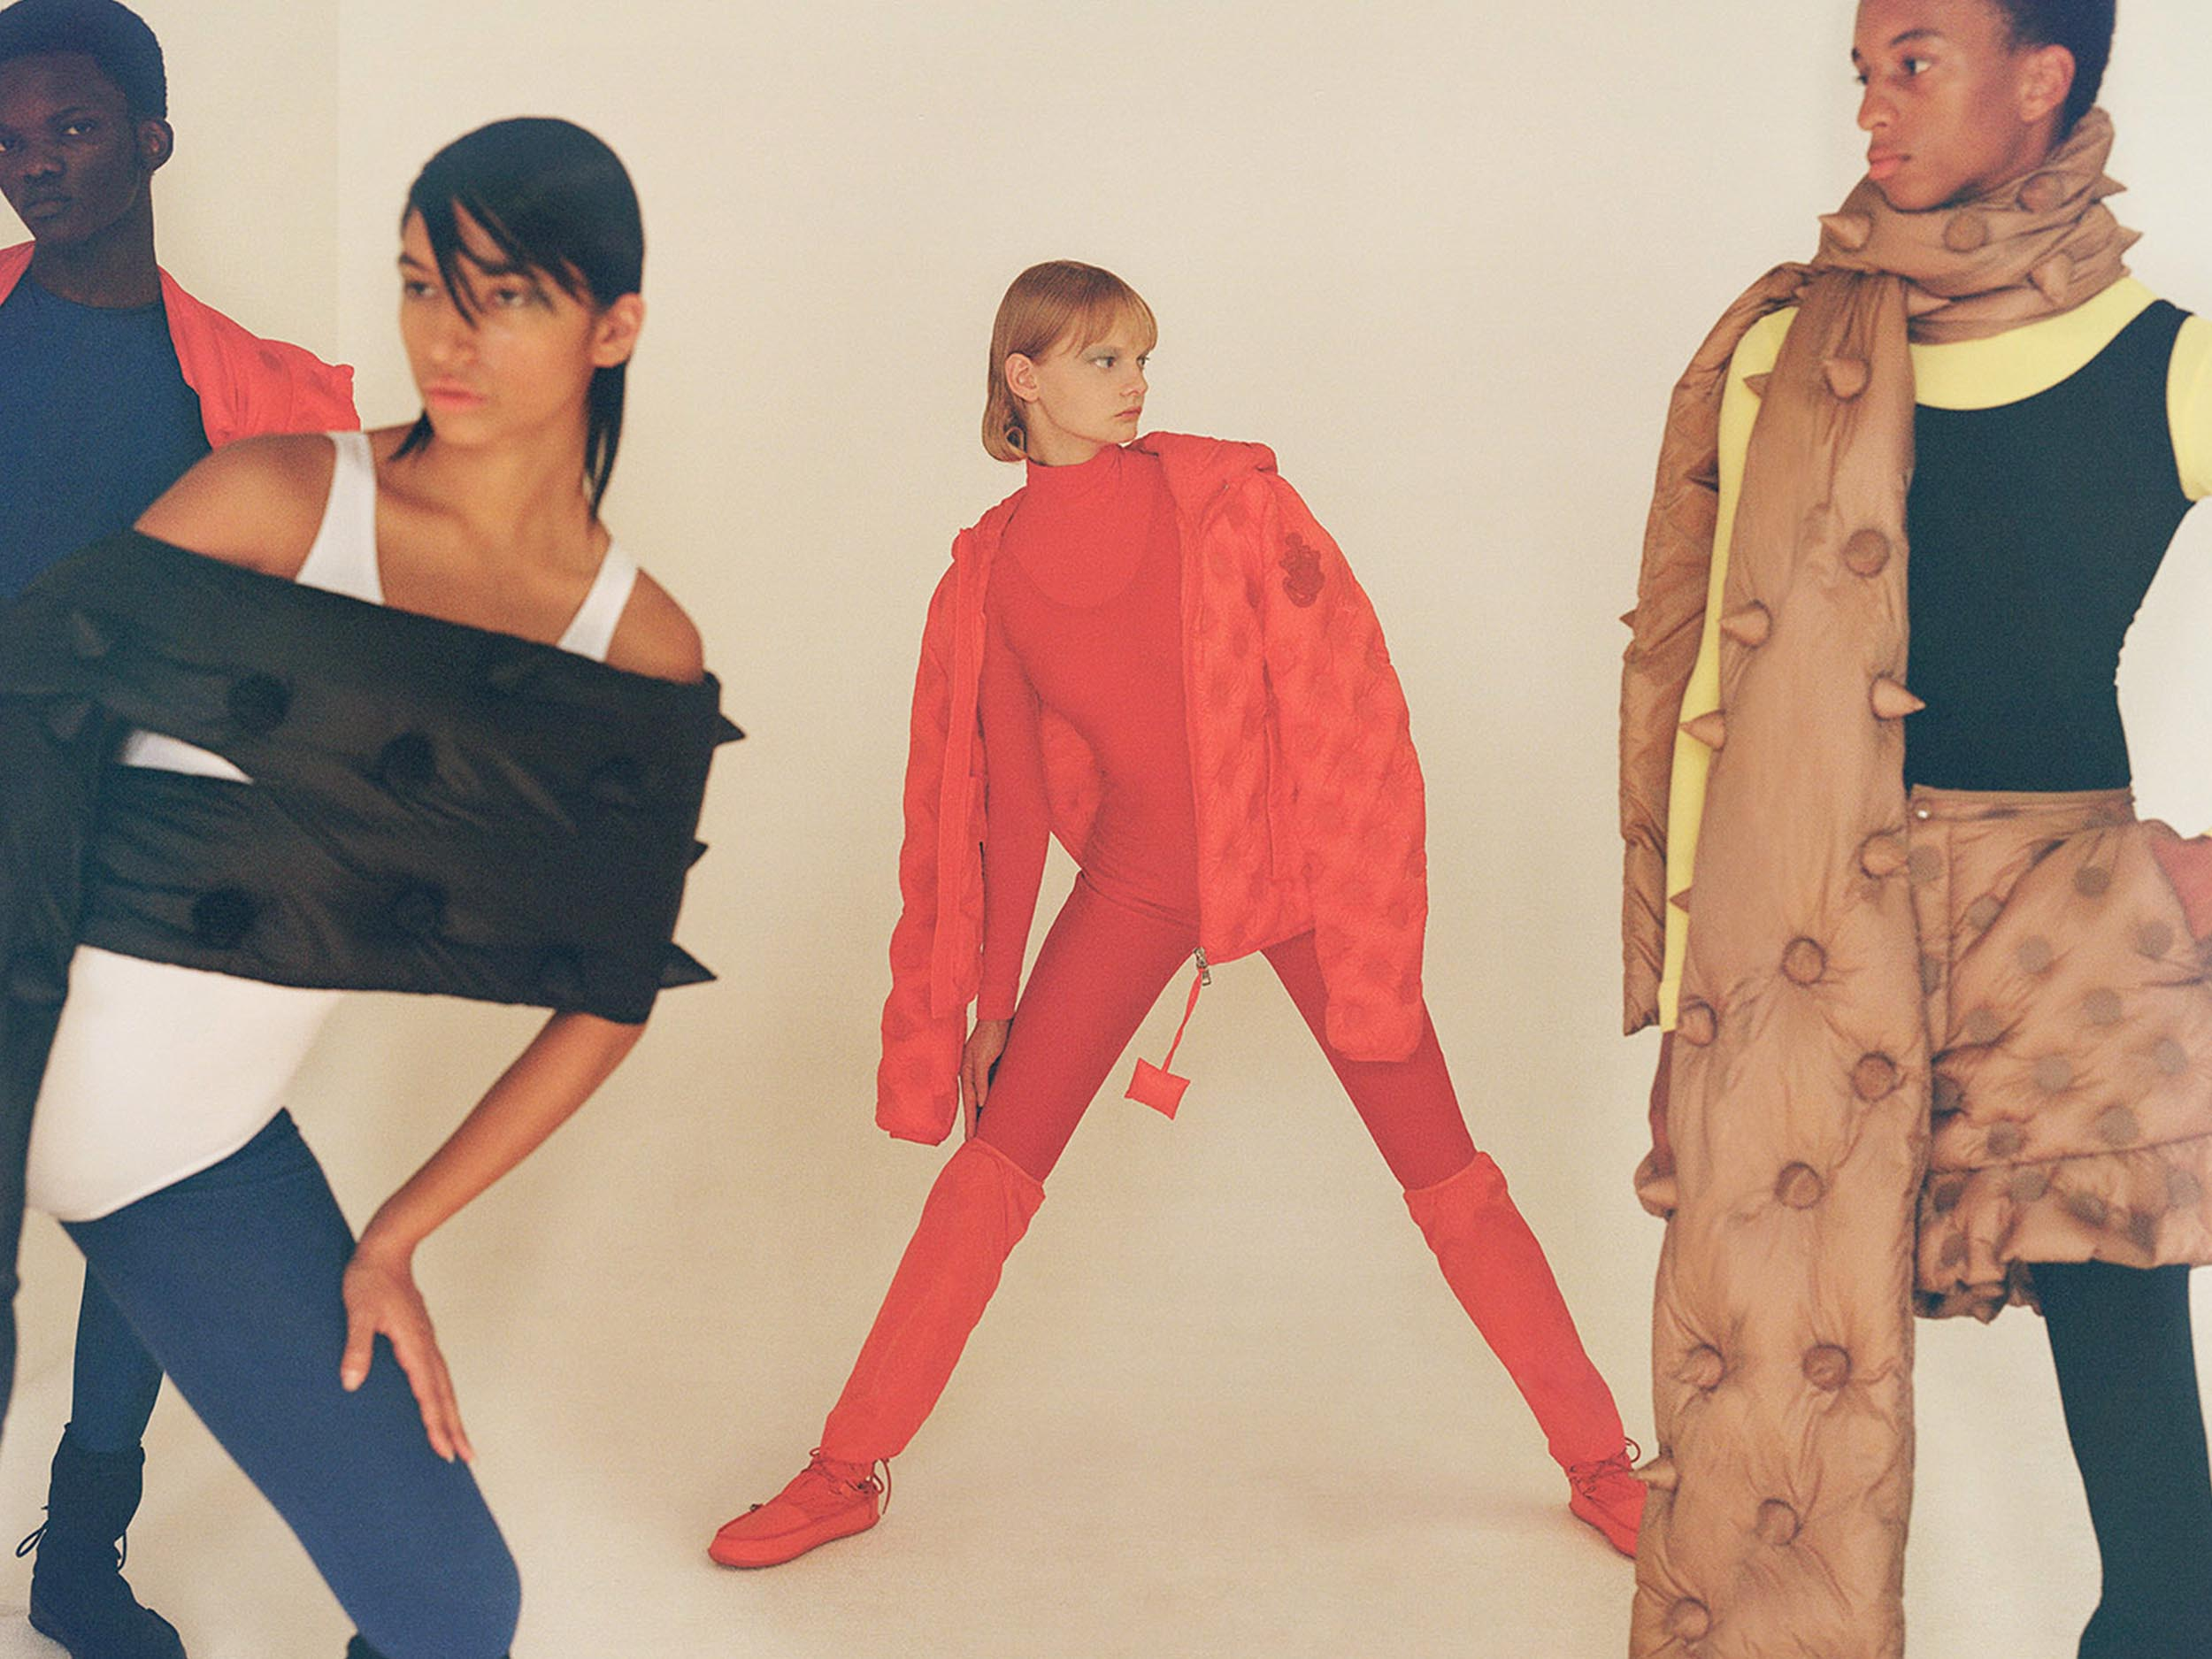 Document captures 1 Moncler JW Anderson as a Bauhaus wonderland